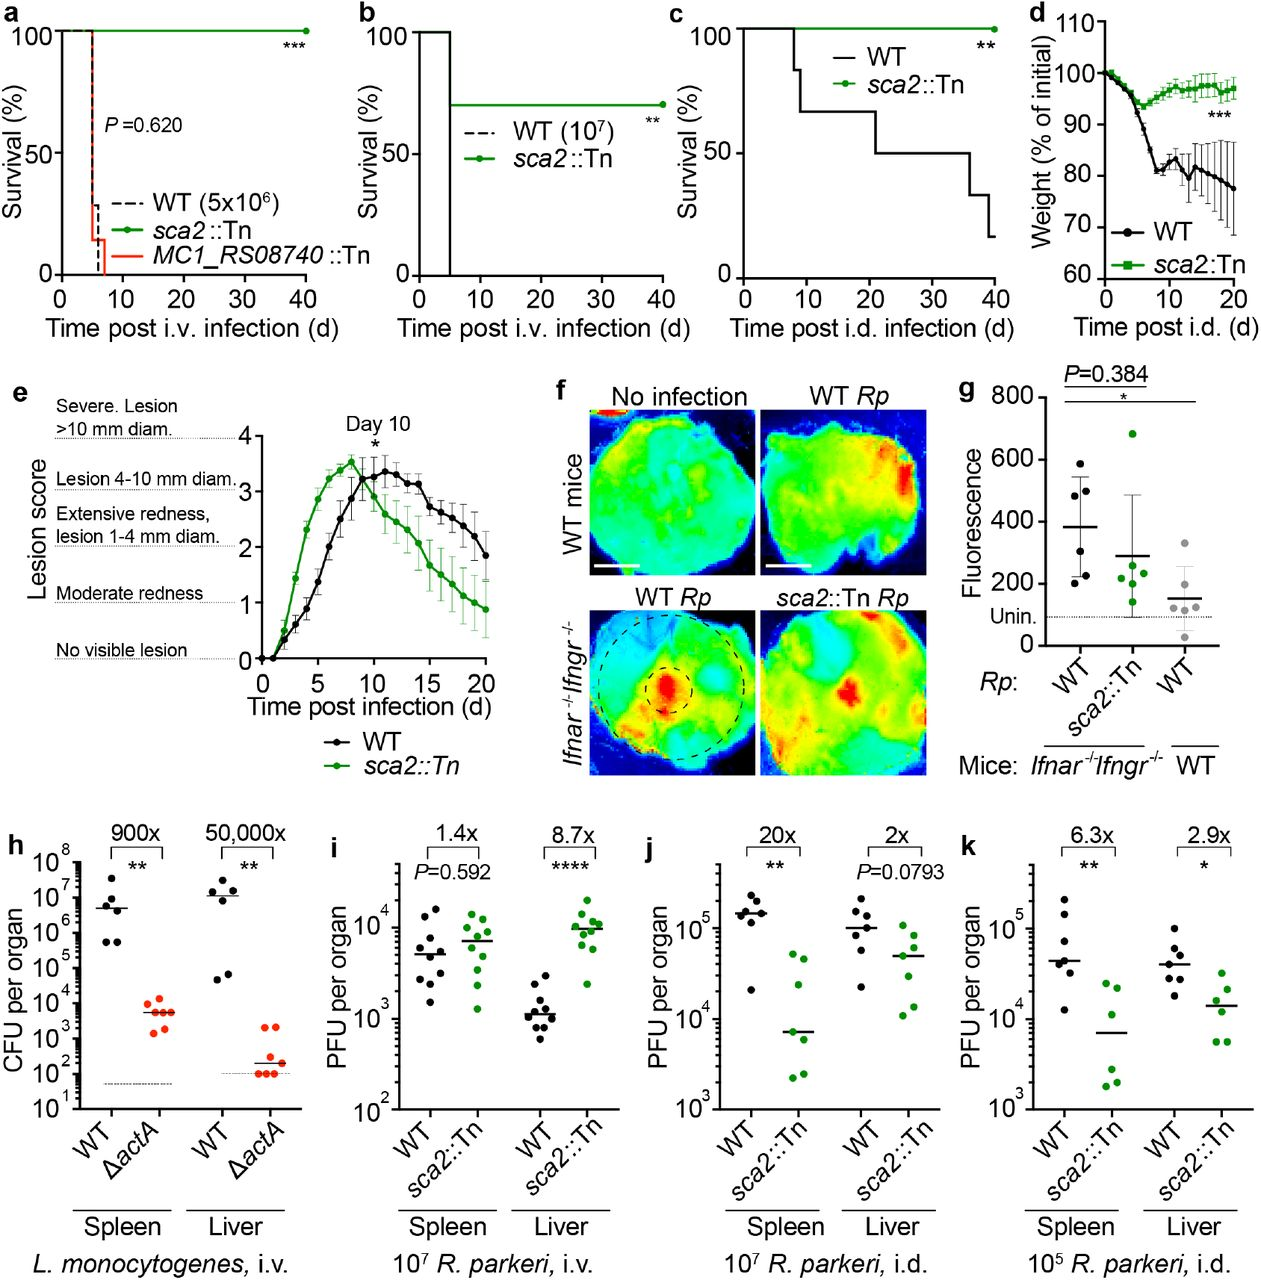 R. parkeri Sca2 contributes to dissemination from skin to peripheral organs. a ) Survival of Ifnar −/− Ifngr −/− mice upon i.v. infection with 5 × 10 6 R. parkeri . n =7 (WT), 10 ( sca2 ::Tn), and 7 ( MC1_RS08740 ::Tn R. parkeri ) individual mice. Data are the combination of two independent experiments. b ) Survival of Ifnar −/− Ifngr −/− mice upon i.v. infection with 10 7 R. parkeri . n =7 (WT) and 10 ( sca2 ::Tn) individual mice. Data are the combination of two independent experiments. c ) Survival of Ifnar −/− Ifngr −/− mice upon i.d. infection with 10 7 R. parkeri . n =6 (WT) and 8 ( sca2 ::Tn) individual mice. Data are the combination of two independent experiments. d ) Weight changes of Ifnar −/− Ifngr −/− mice upon i.d. infection with 10 7 R. parkeri . n =6 (WT) and 8 ( sca2 ::Tn) individual mice. Data are the combination of two independent experiments. e ) Analysis of gross skin pathology after i.d. infection. Ifnar −/− Ifngr −/− mice were infected with 10 7 of the indicated strains of R. parkeri and monitored over time. n =9 (WT) and 8 ( sca2 ::Tn) individual mice. Data are the combination of two independent experiments. f ) Representative images of fluorescence in mouse skin after i.d. infection with 10 6 R. parkeri and delivery of a fluorescent dextran, at 5 d.p.i. Scale bars, 1 cm. The larger black dashed circle represents the area that was measured for fluorescence for each sample, as indicated in Fig. 3g (~80,000 pixels). The smaller black-dashed circle represents of the injection site area that was measured for fluorescence for each sample, as indicated in Extended Data Fig. 3 (~7,800 pixels). g ) Quantification of fluorescence in mouse skin after i.d. infection. Mice were infected with 10 7 R. parkeri , and 150 μl fluorescent dextran was intravenously delivered at 5 d.p.i. Skin was harvested 2 h later, and fluorescence was measured using a fluorescence imager. Data indicate measurements of larger areas of skin, as indicated in f by the larger black c